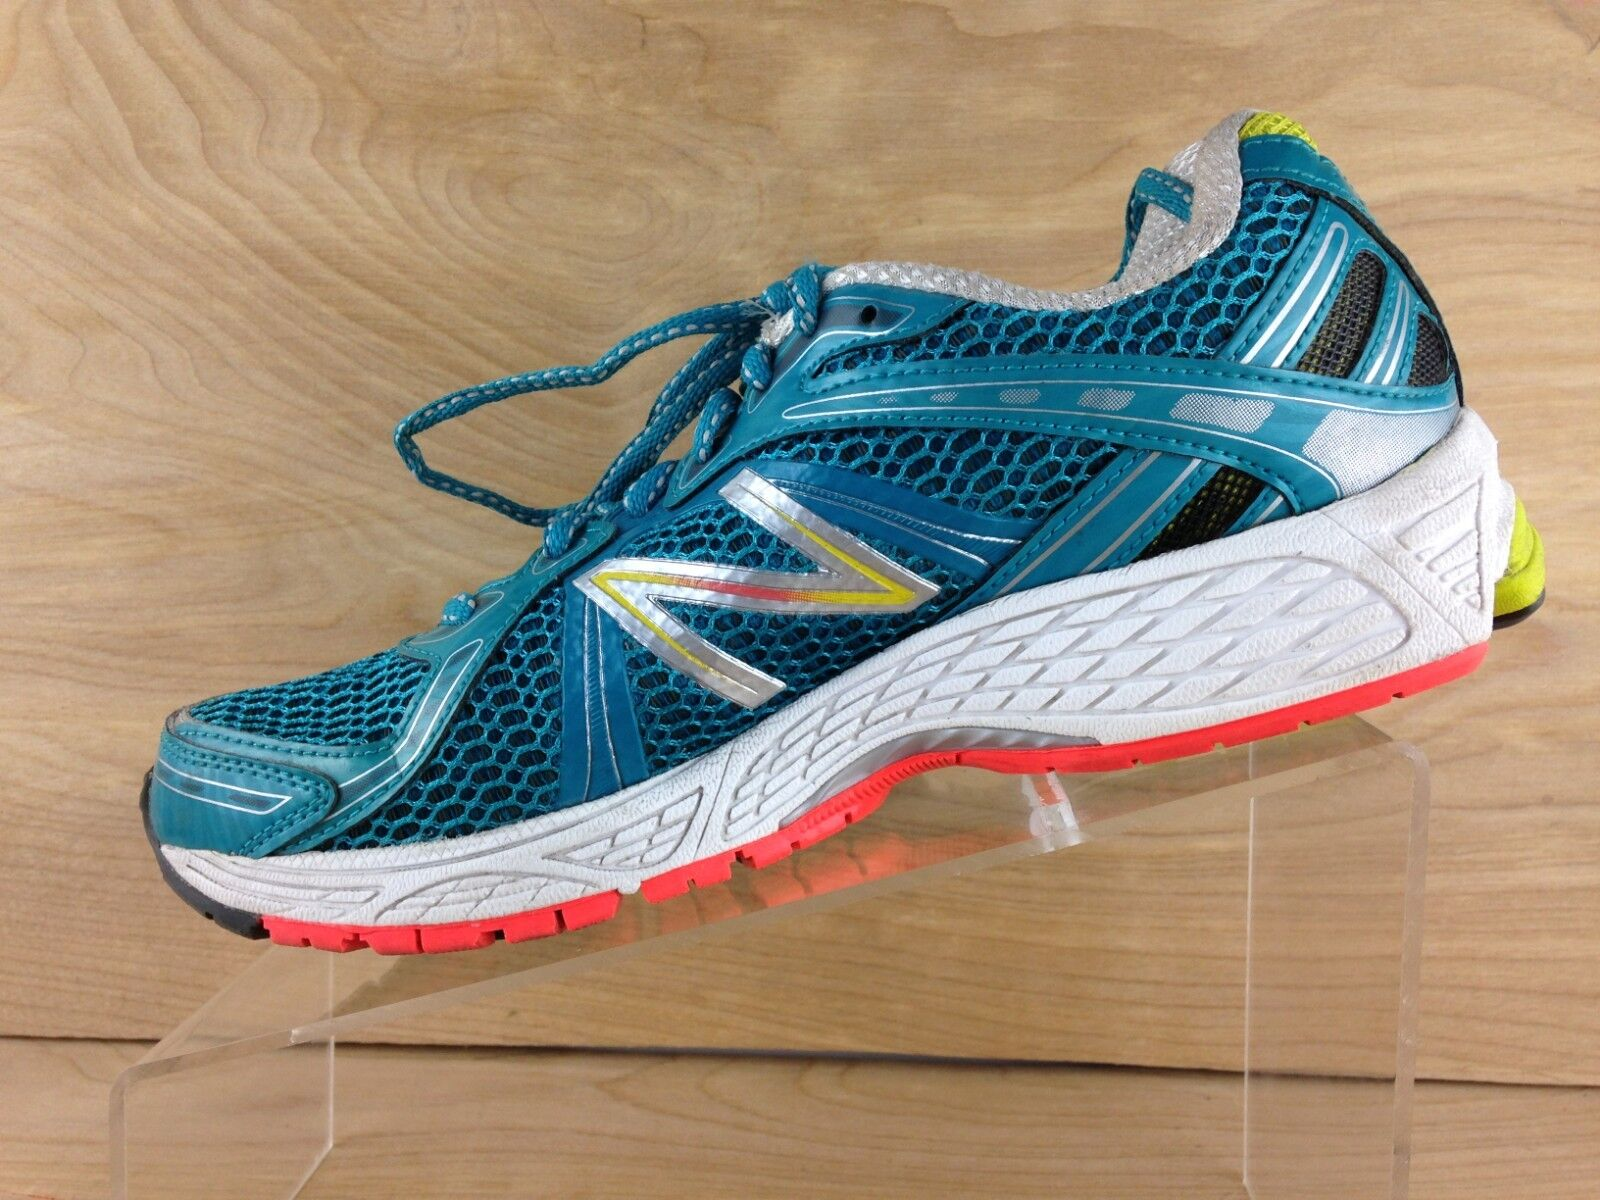 New Balance 780 v3 Womens Teal Lace Up Running shoes Size 8B